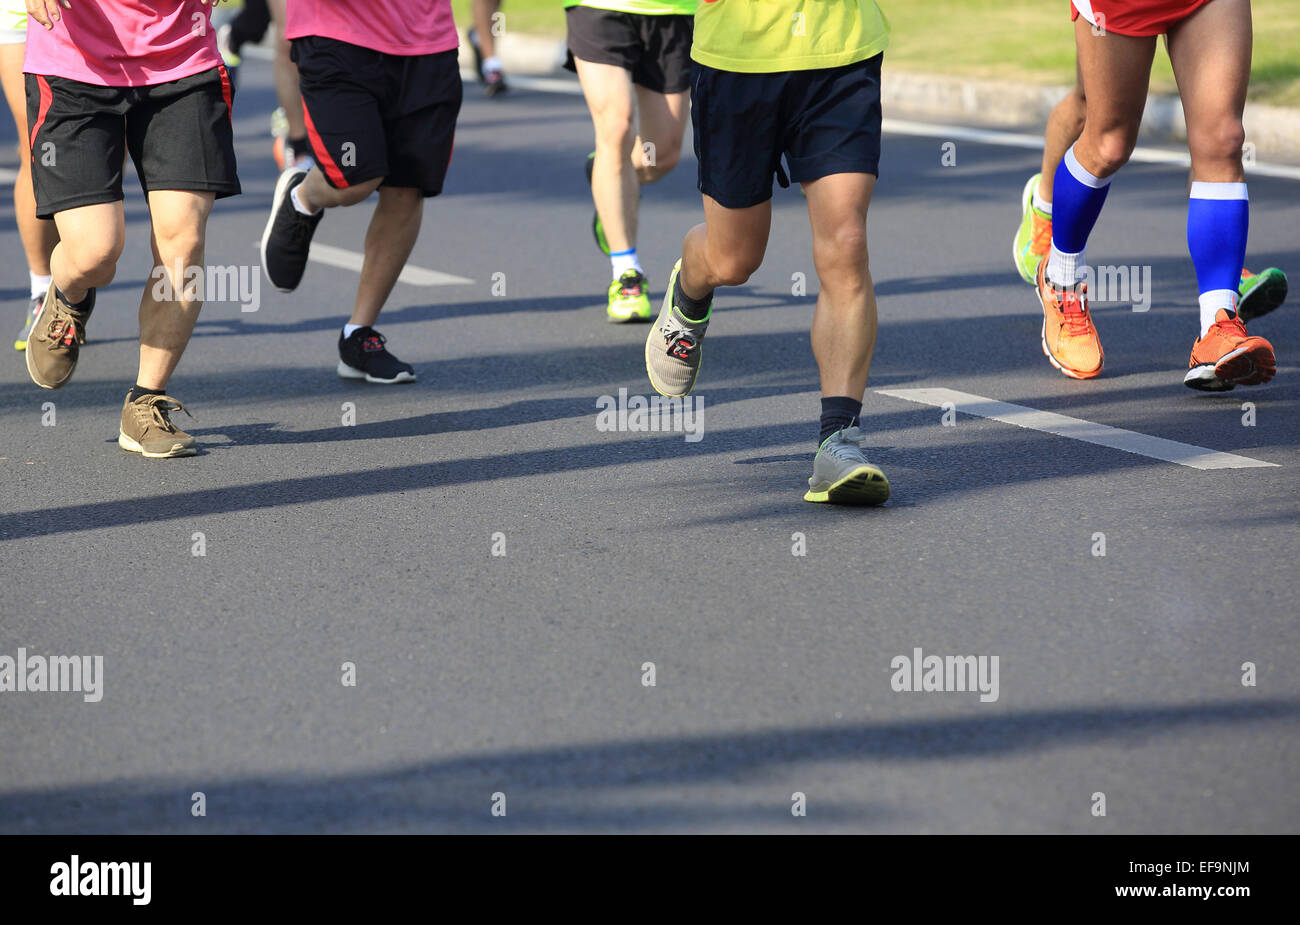 marathon runners runnning on city road - Stock Image